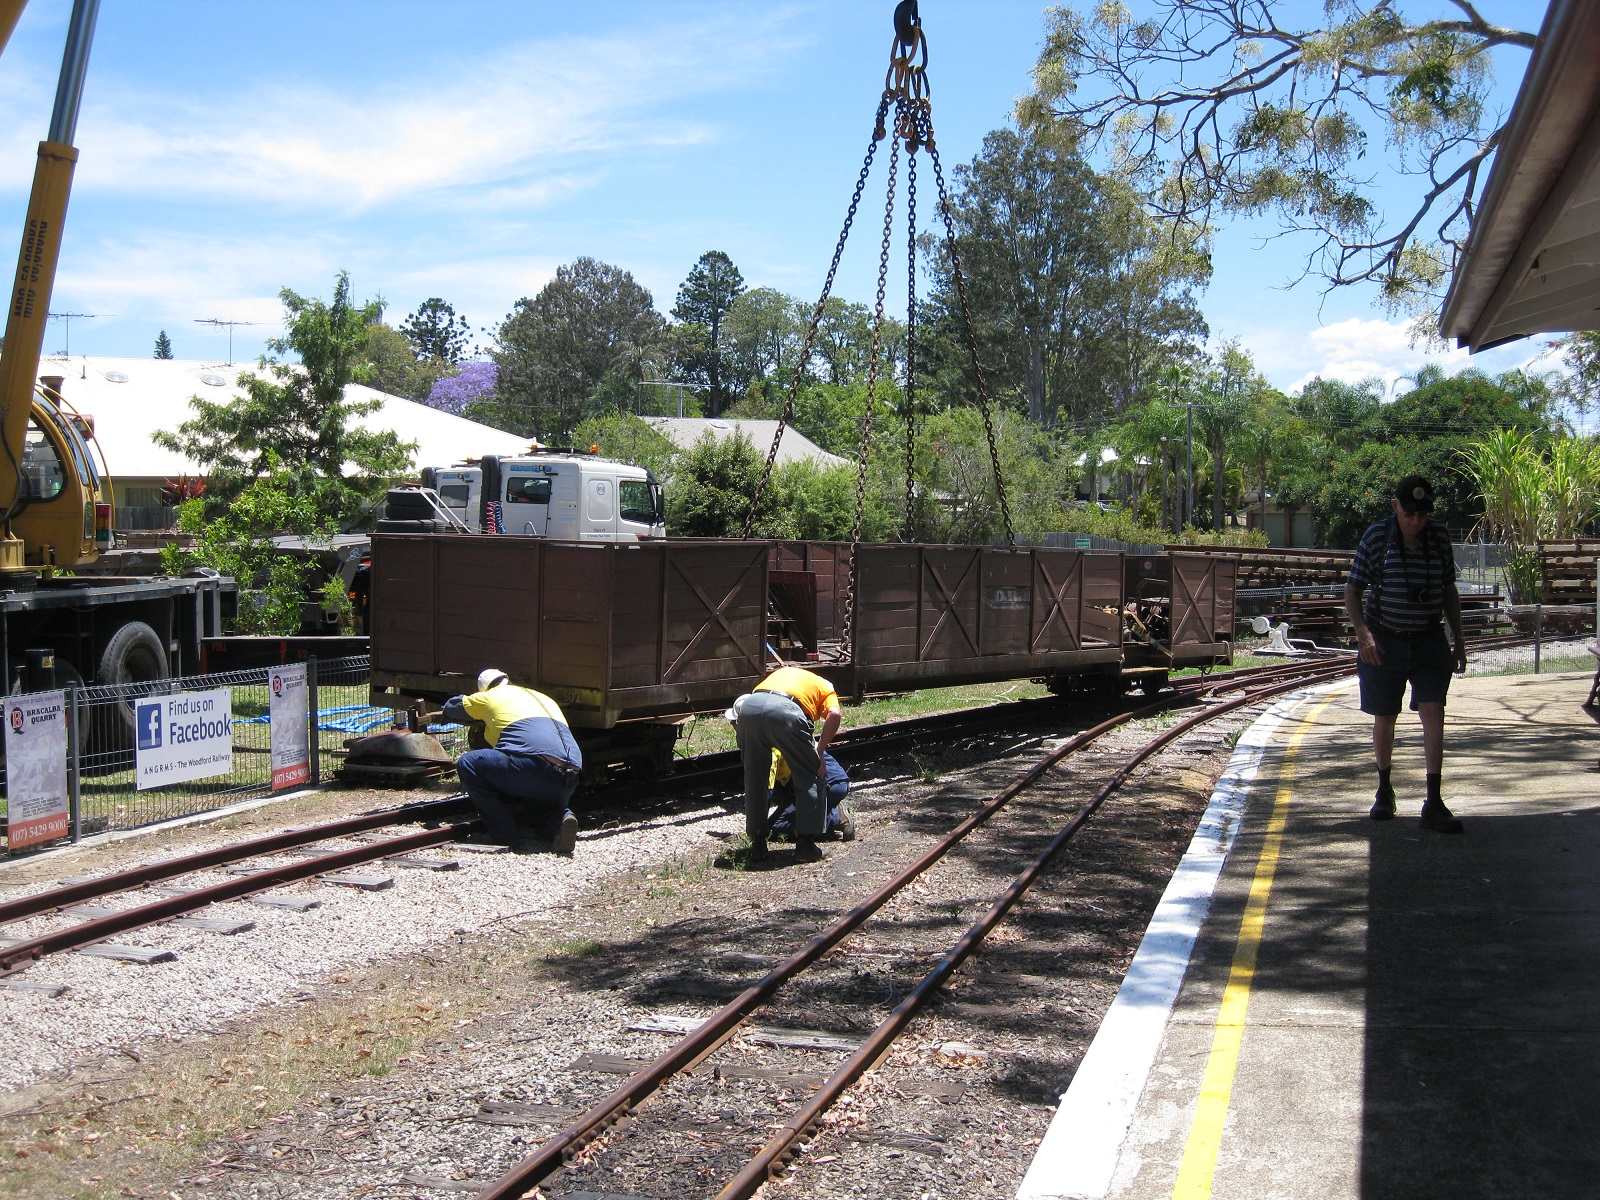 Wagon being delievered to Woodford